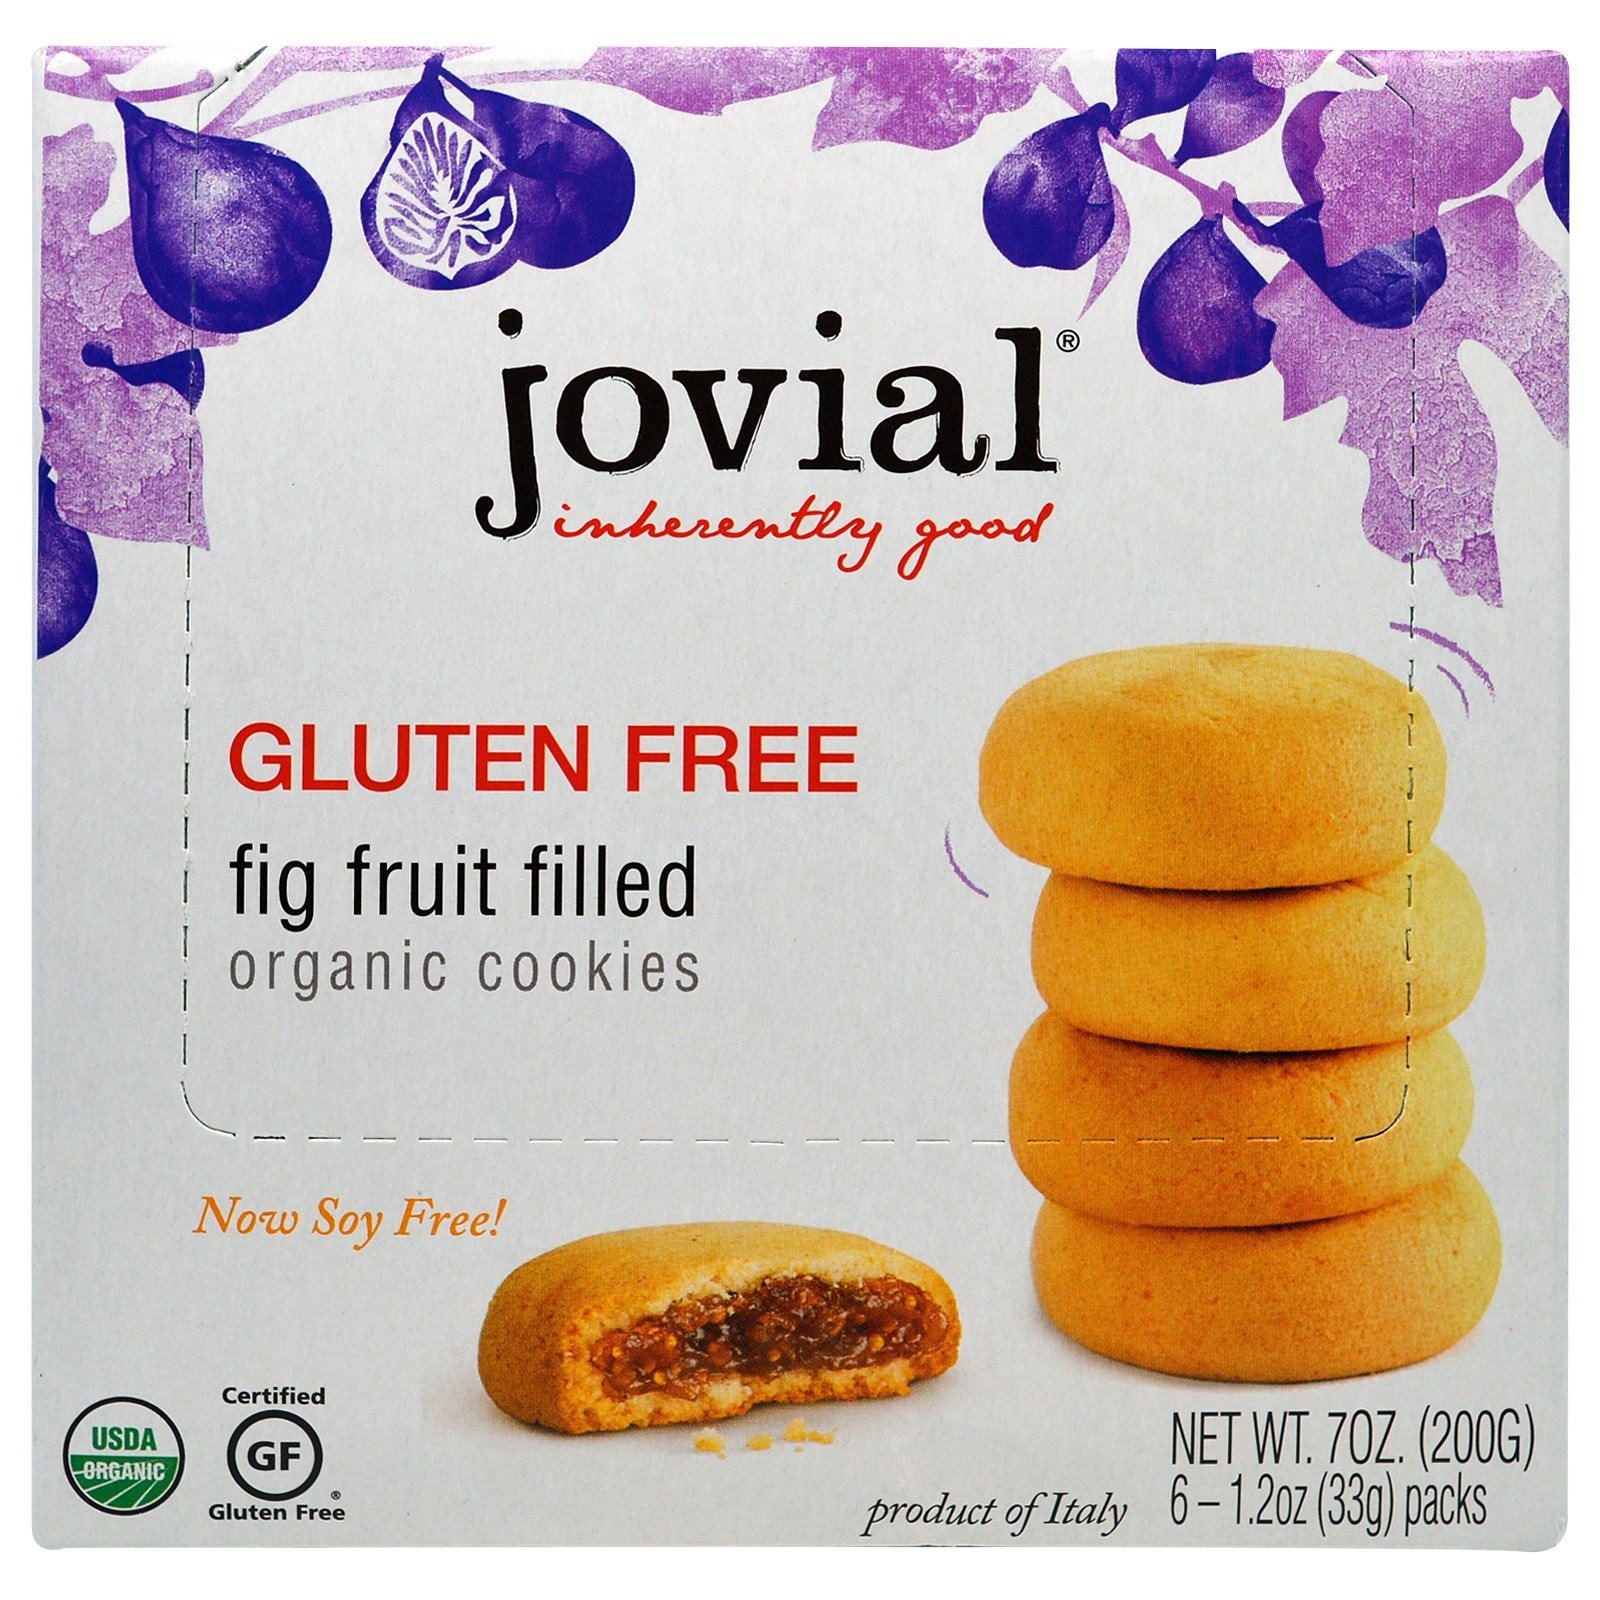 Jovial, Organic Cookies, Fig Fruit Filled, 6 Packs, 1.2 oz (33 g) Each - 3PC by Jovial